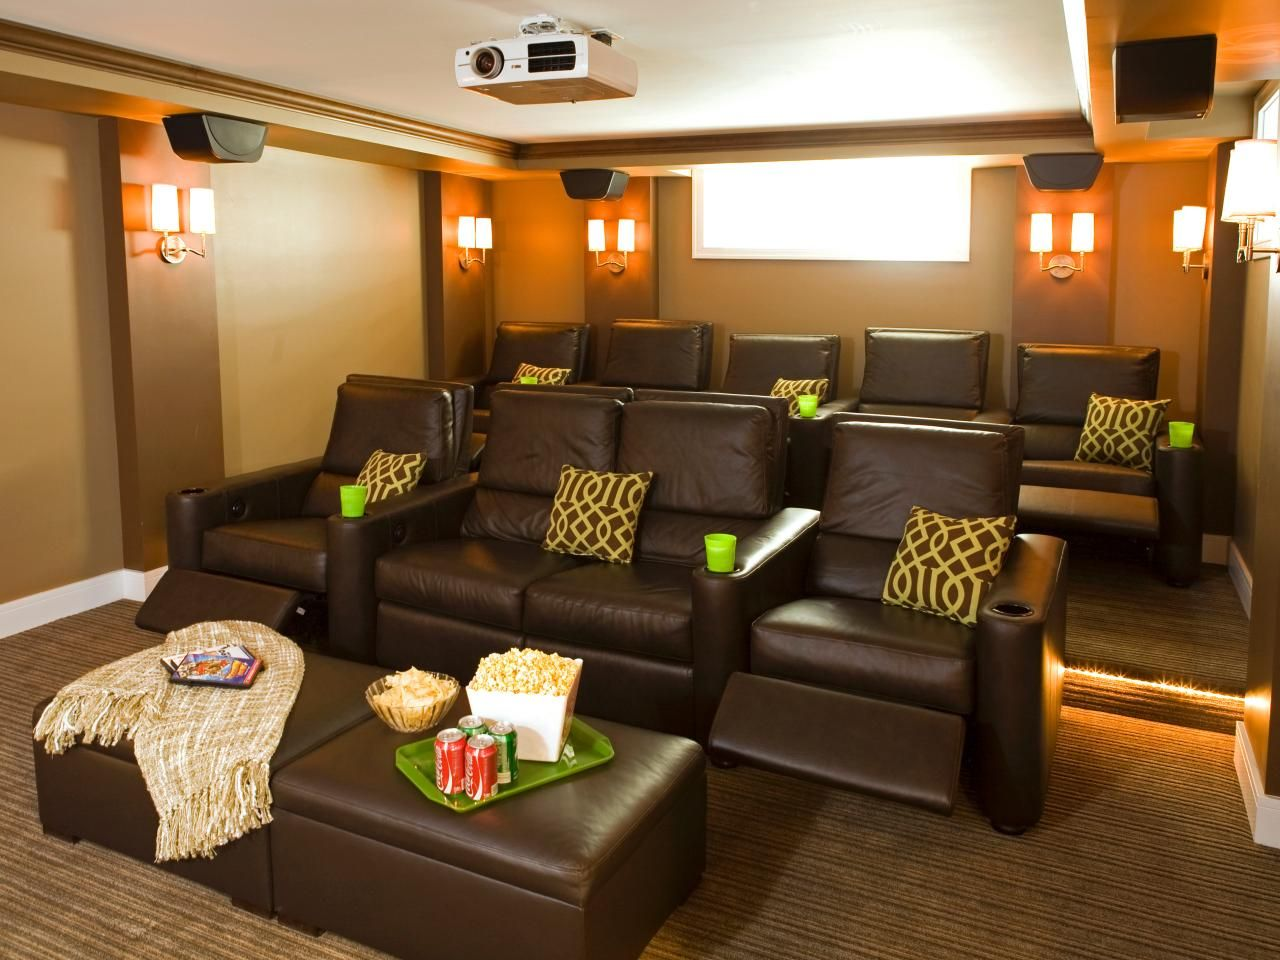 A simple sleek modern home theater features large automatic basement movie room amipublicfo Choice Image